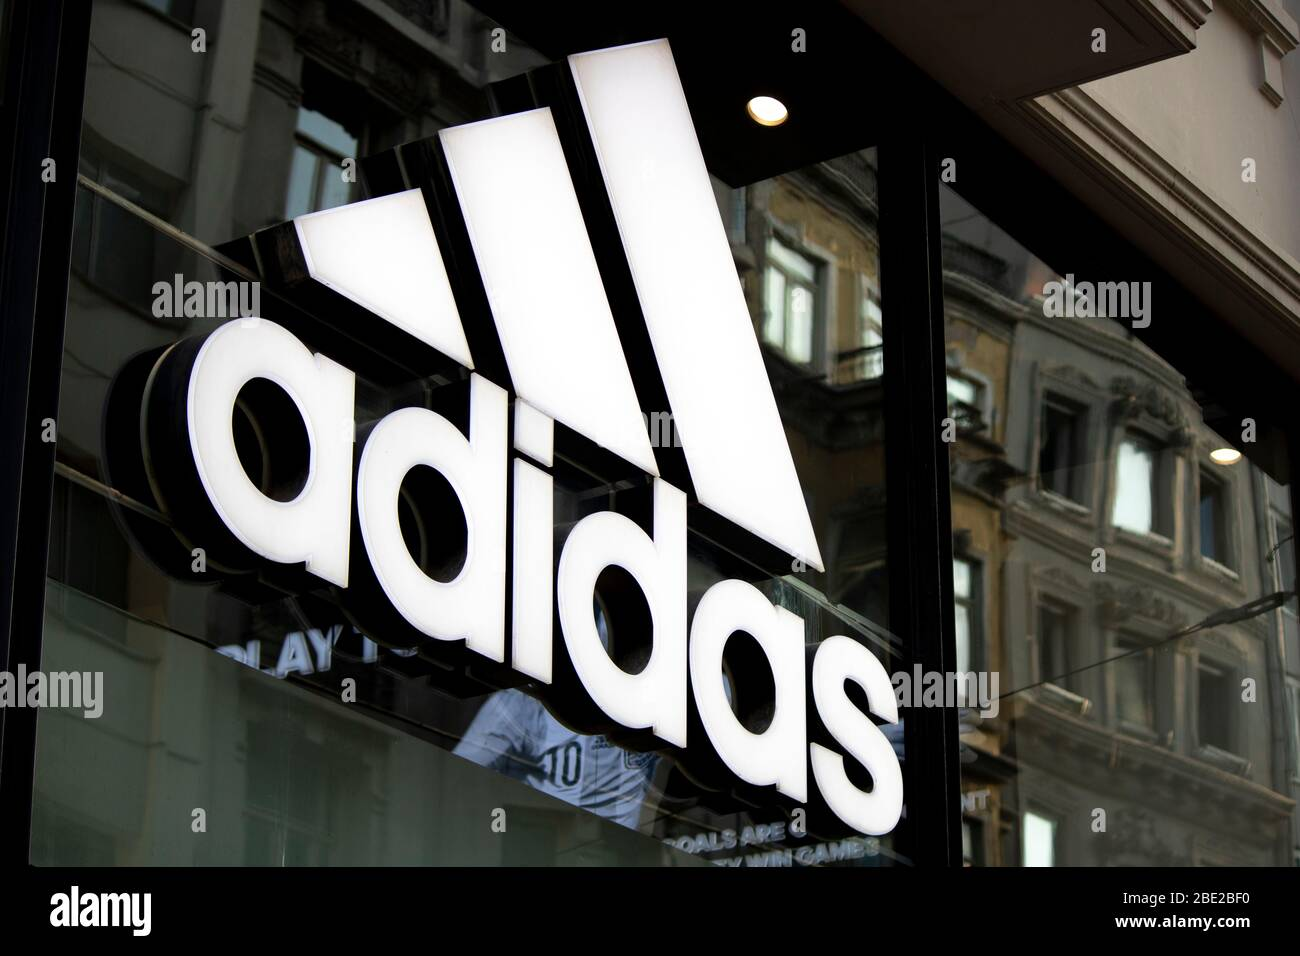 Billboard Advertising Adidas High Resolution Stock Photography And Images Alamy